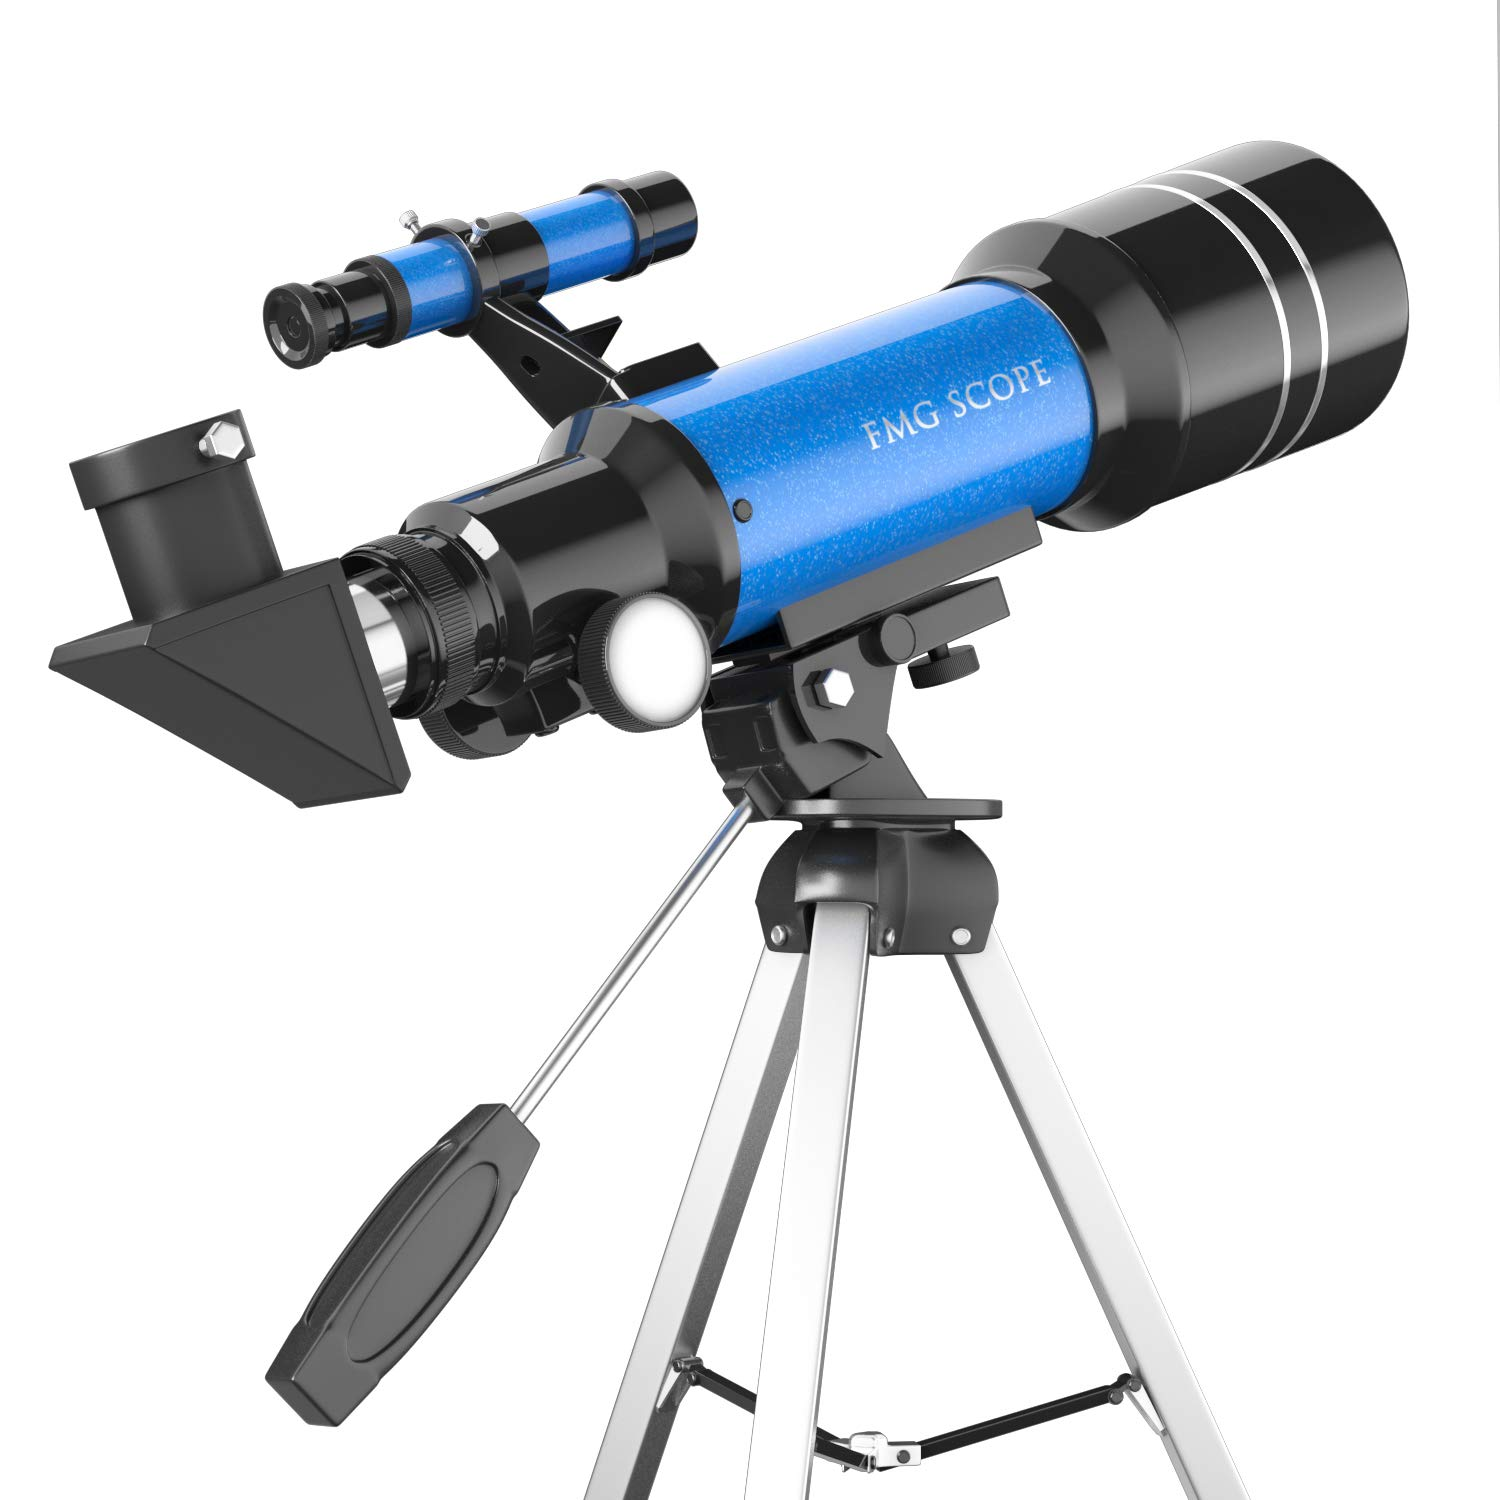 Portable Kids Telescope 400x 70 mm with Tripod , Finder Scope and Moon Mirror , Travel Telescope for Kids & Beginners by FMG Scope